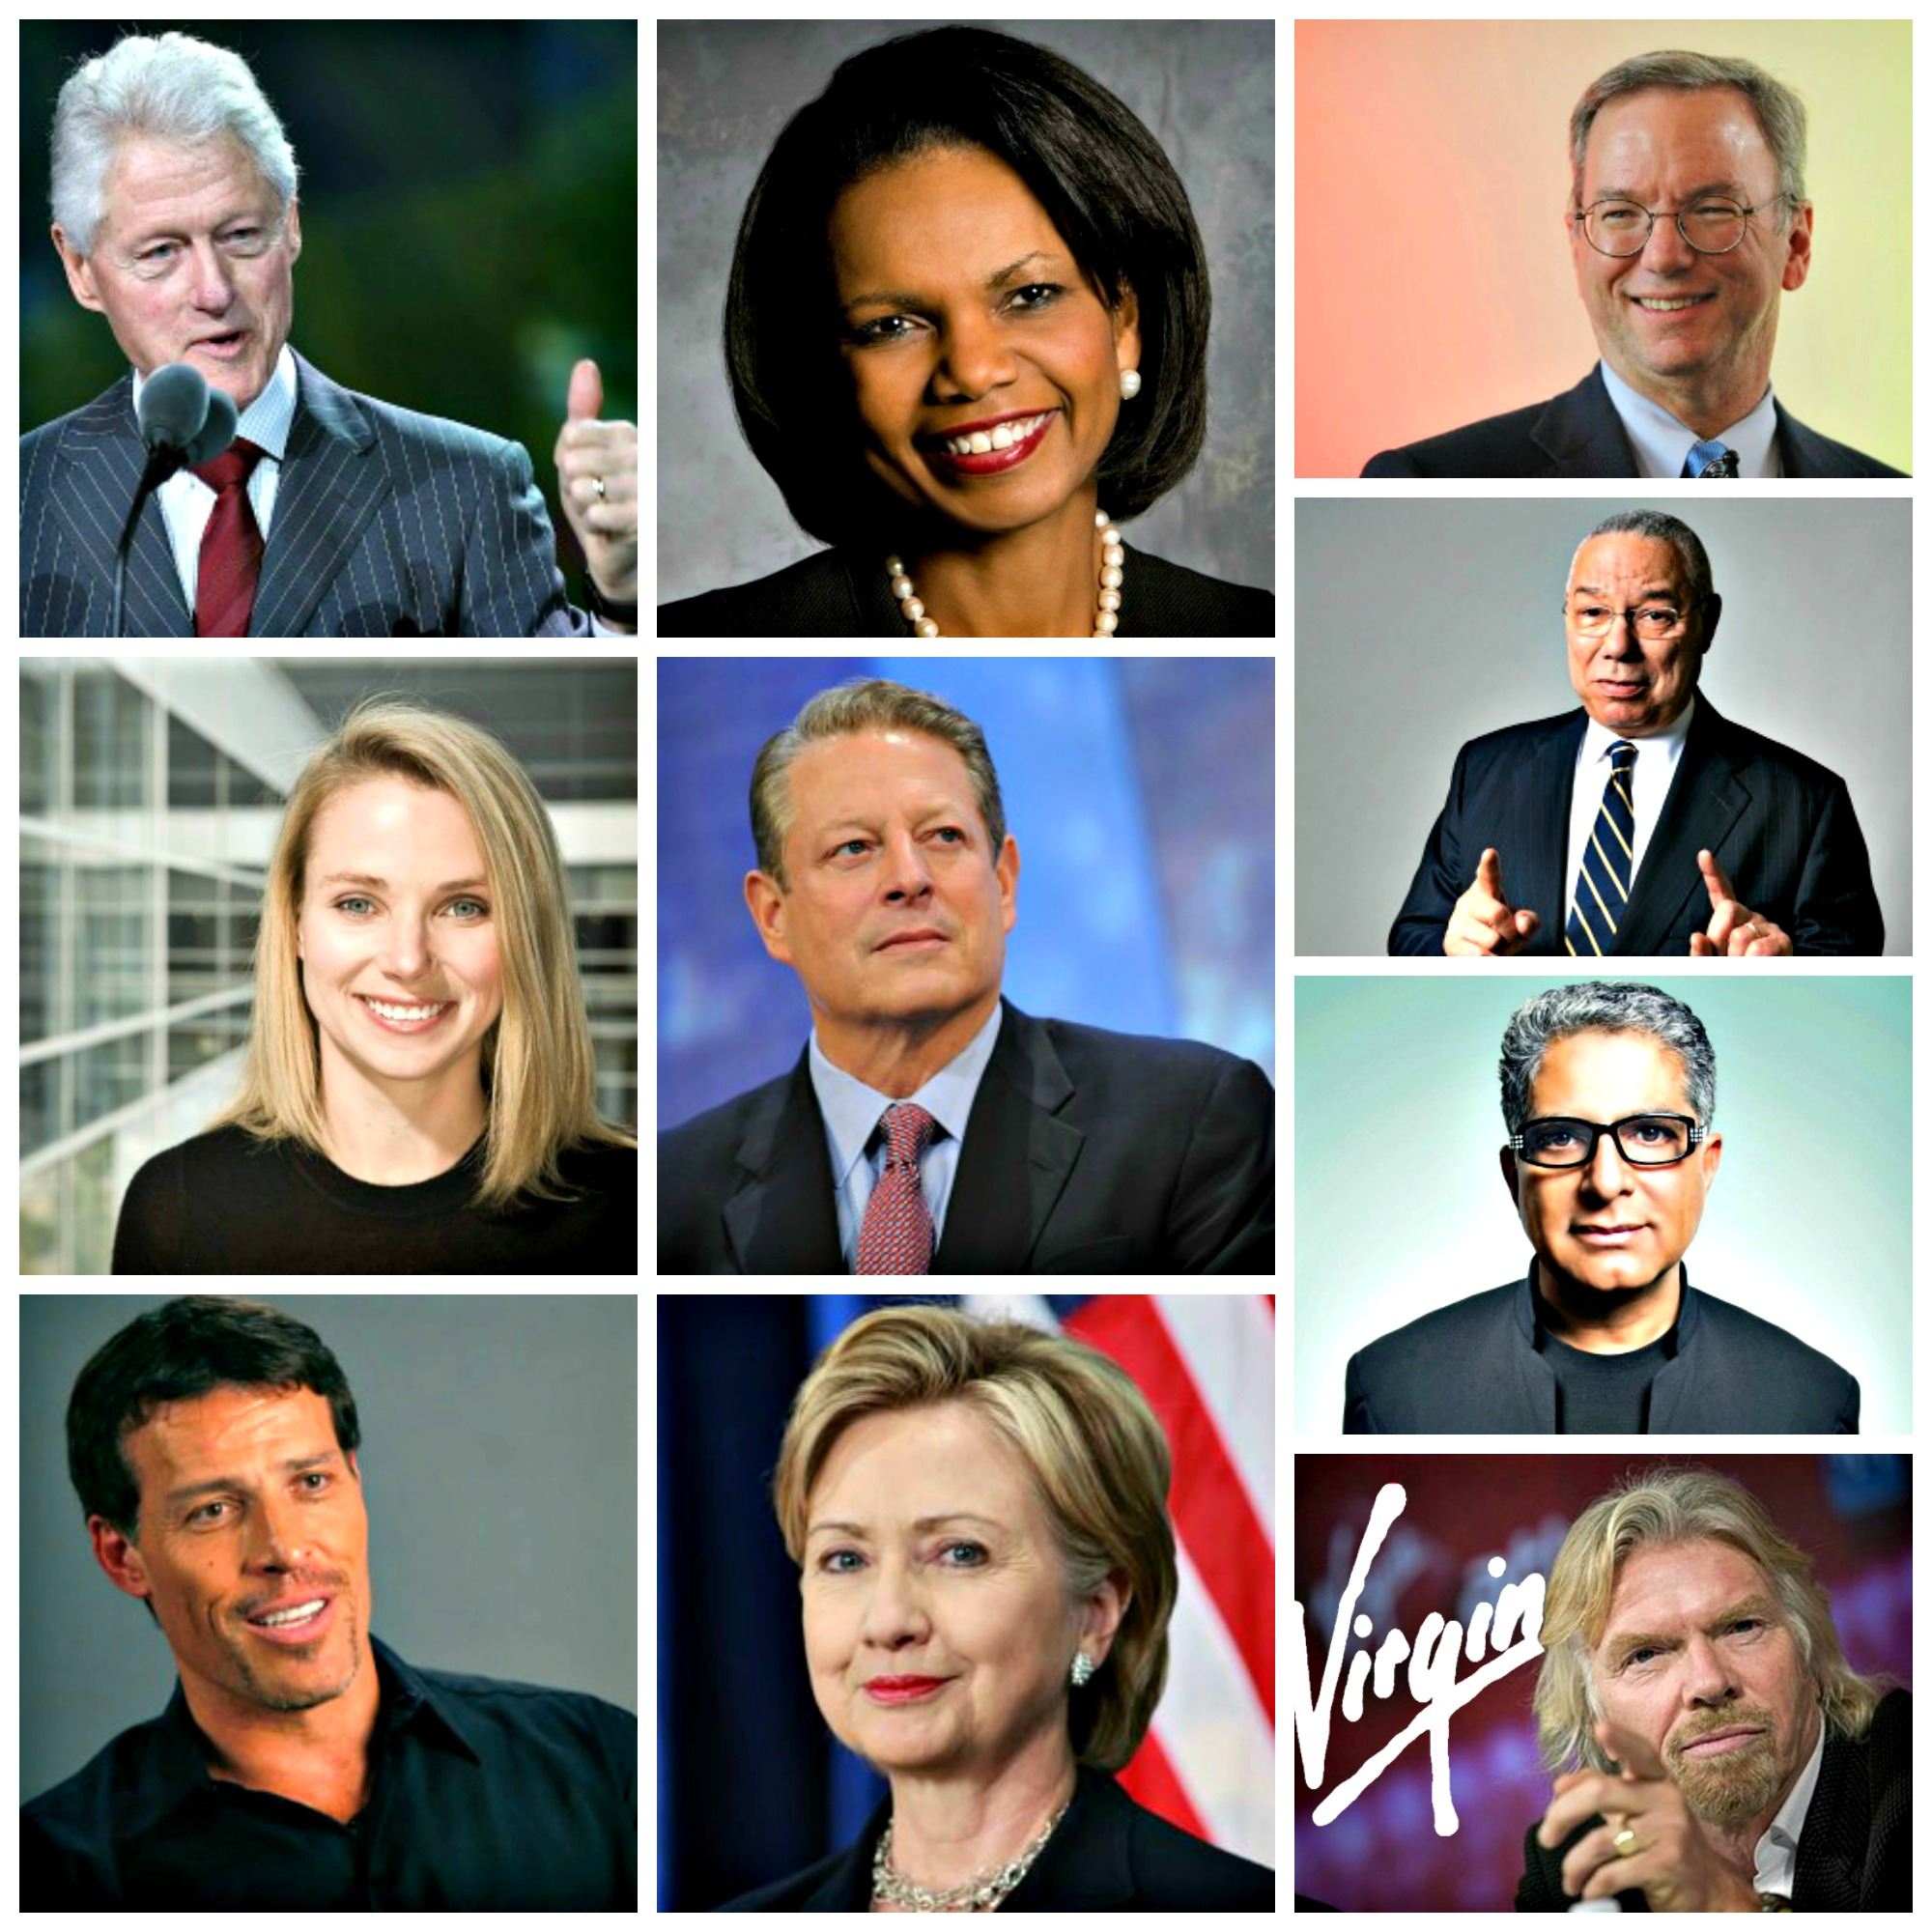 A list of all the Dreamforce keynote speakers from 2003-2015